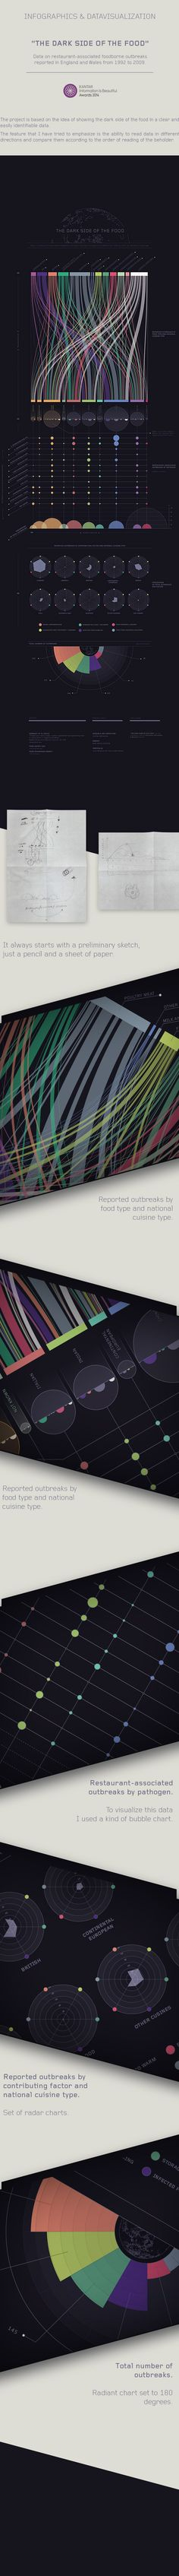 """THE DARK SIDE OF THE FOOD""Data on restaurant-associated food borne outbreaksreported in England and Wales from 1992 to data visualization was originally made for the ""Food Poisoning"" challenge organized by Kantar Information is beautiful Aw… Web Design, Chart Design, Graphic Design, Keynote Design, Information Visualization, Data Visualization, Information Design, Information Graphics, Interface Design"